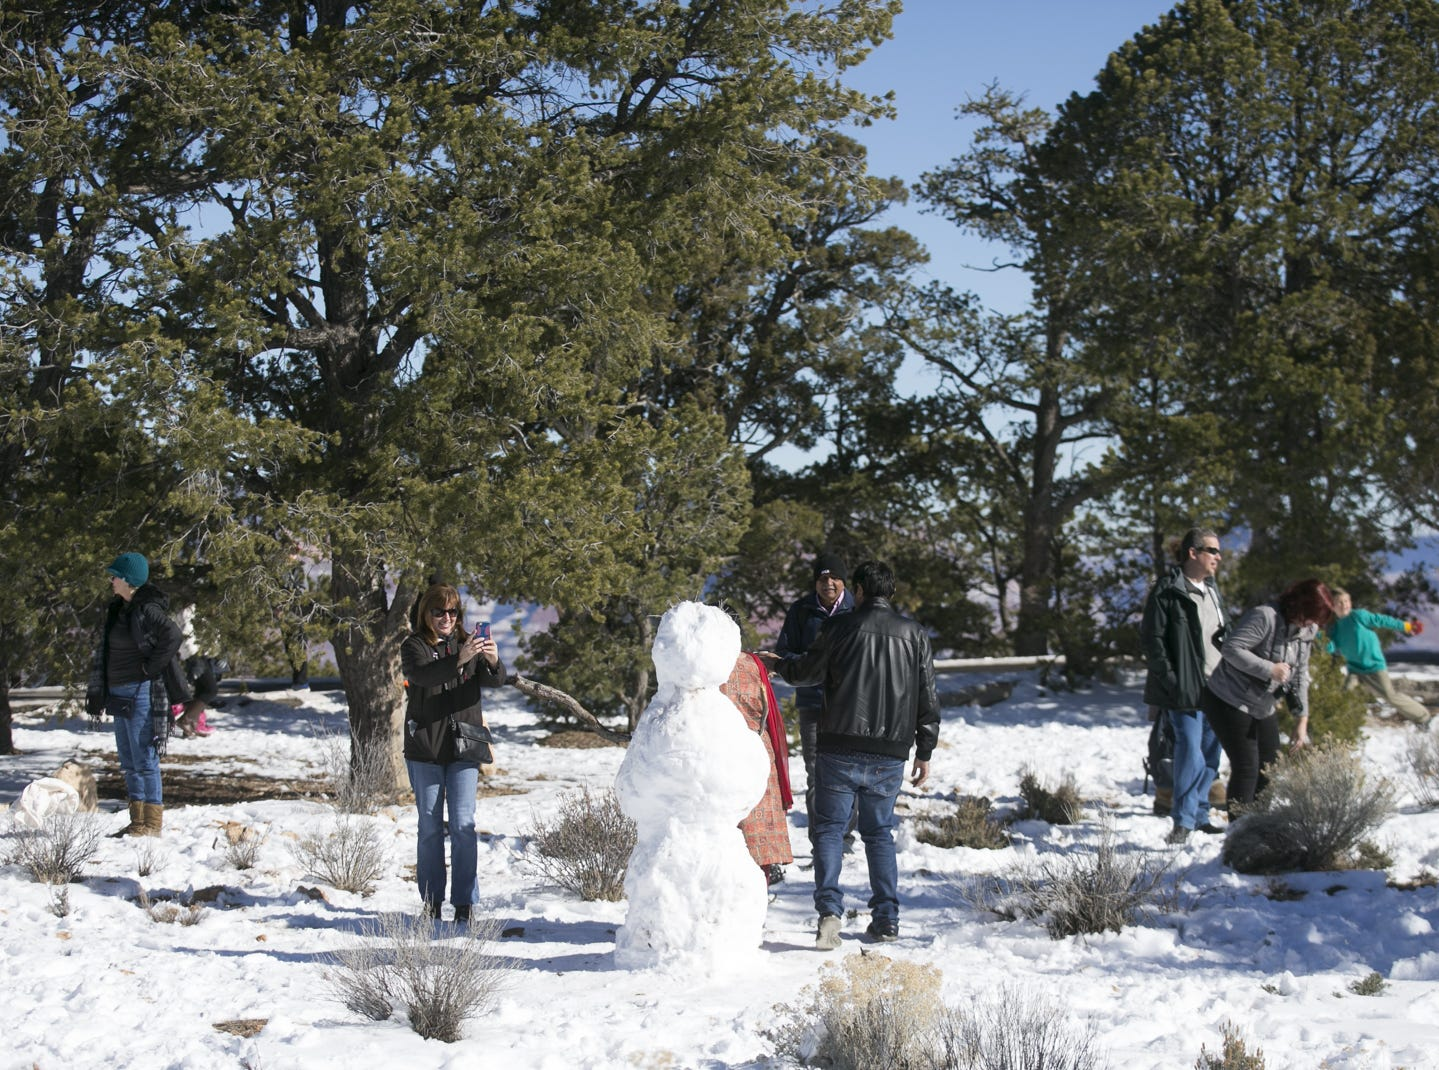 Visitors make a snowman near the rim of Grand Canyon National Park on Jan. 4, 2019. The park was staffed at minimum capacity due to the government shutdown but retained much of its services due to an executive order issued by Arizona Gov. Doug Ducey to run the park with state funds in the event of a shutdown.